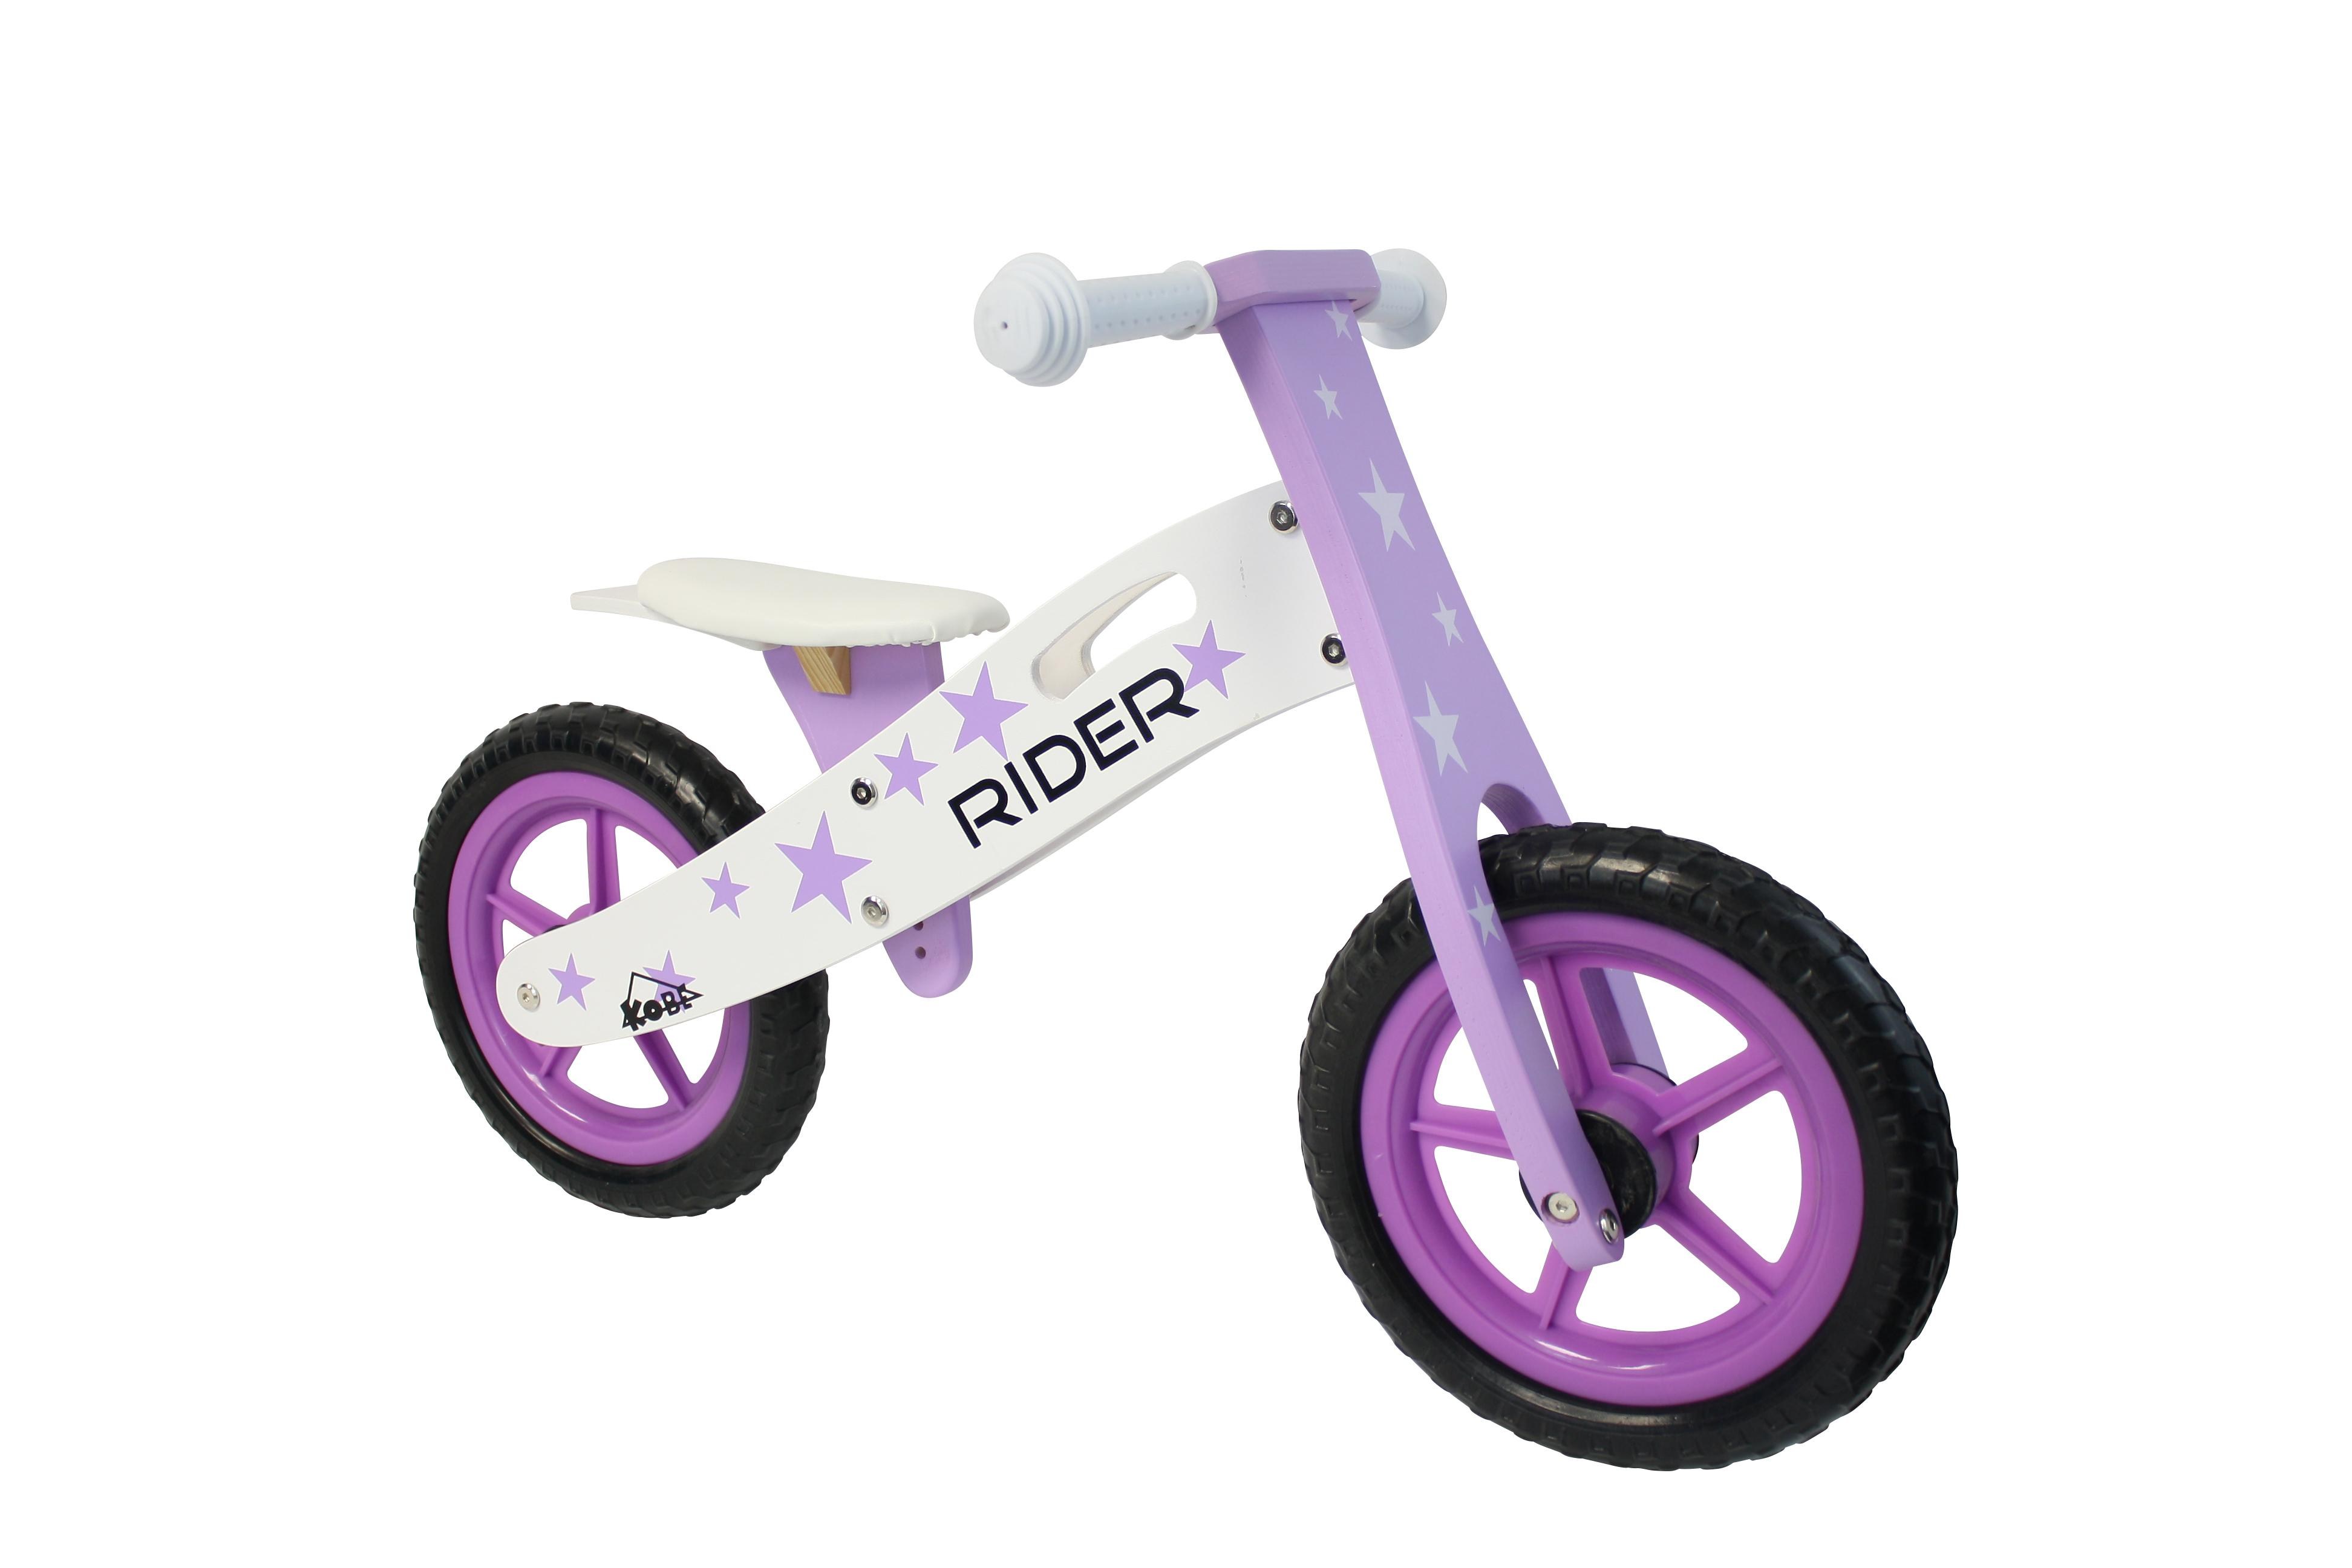 Kobe Wooden Balance Bike Purple Rider Purple And White Amazon